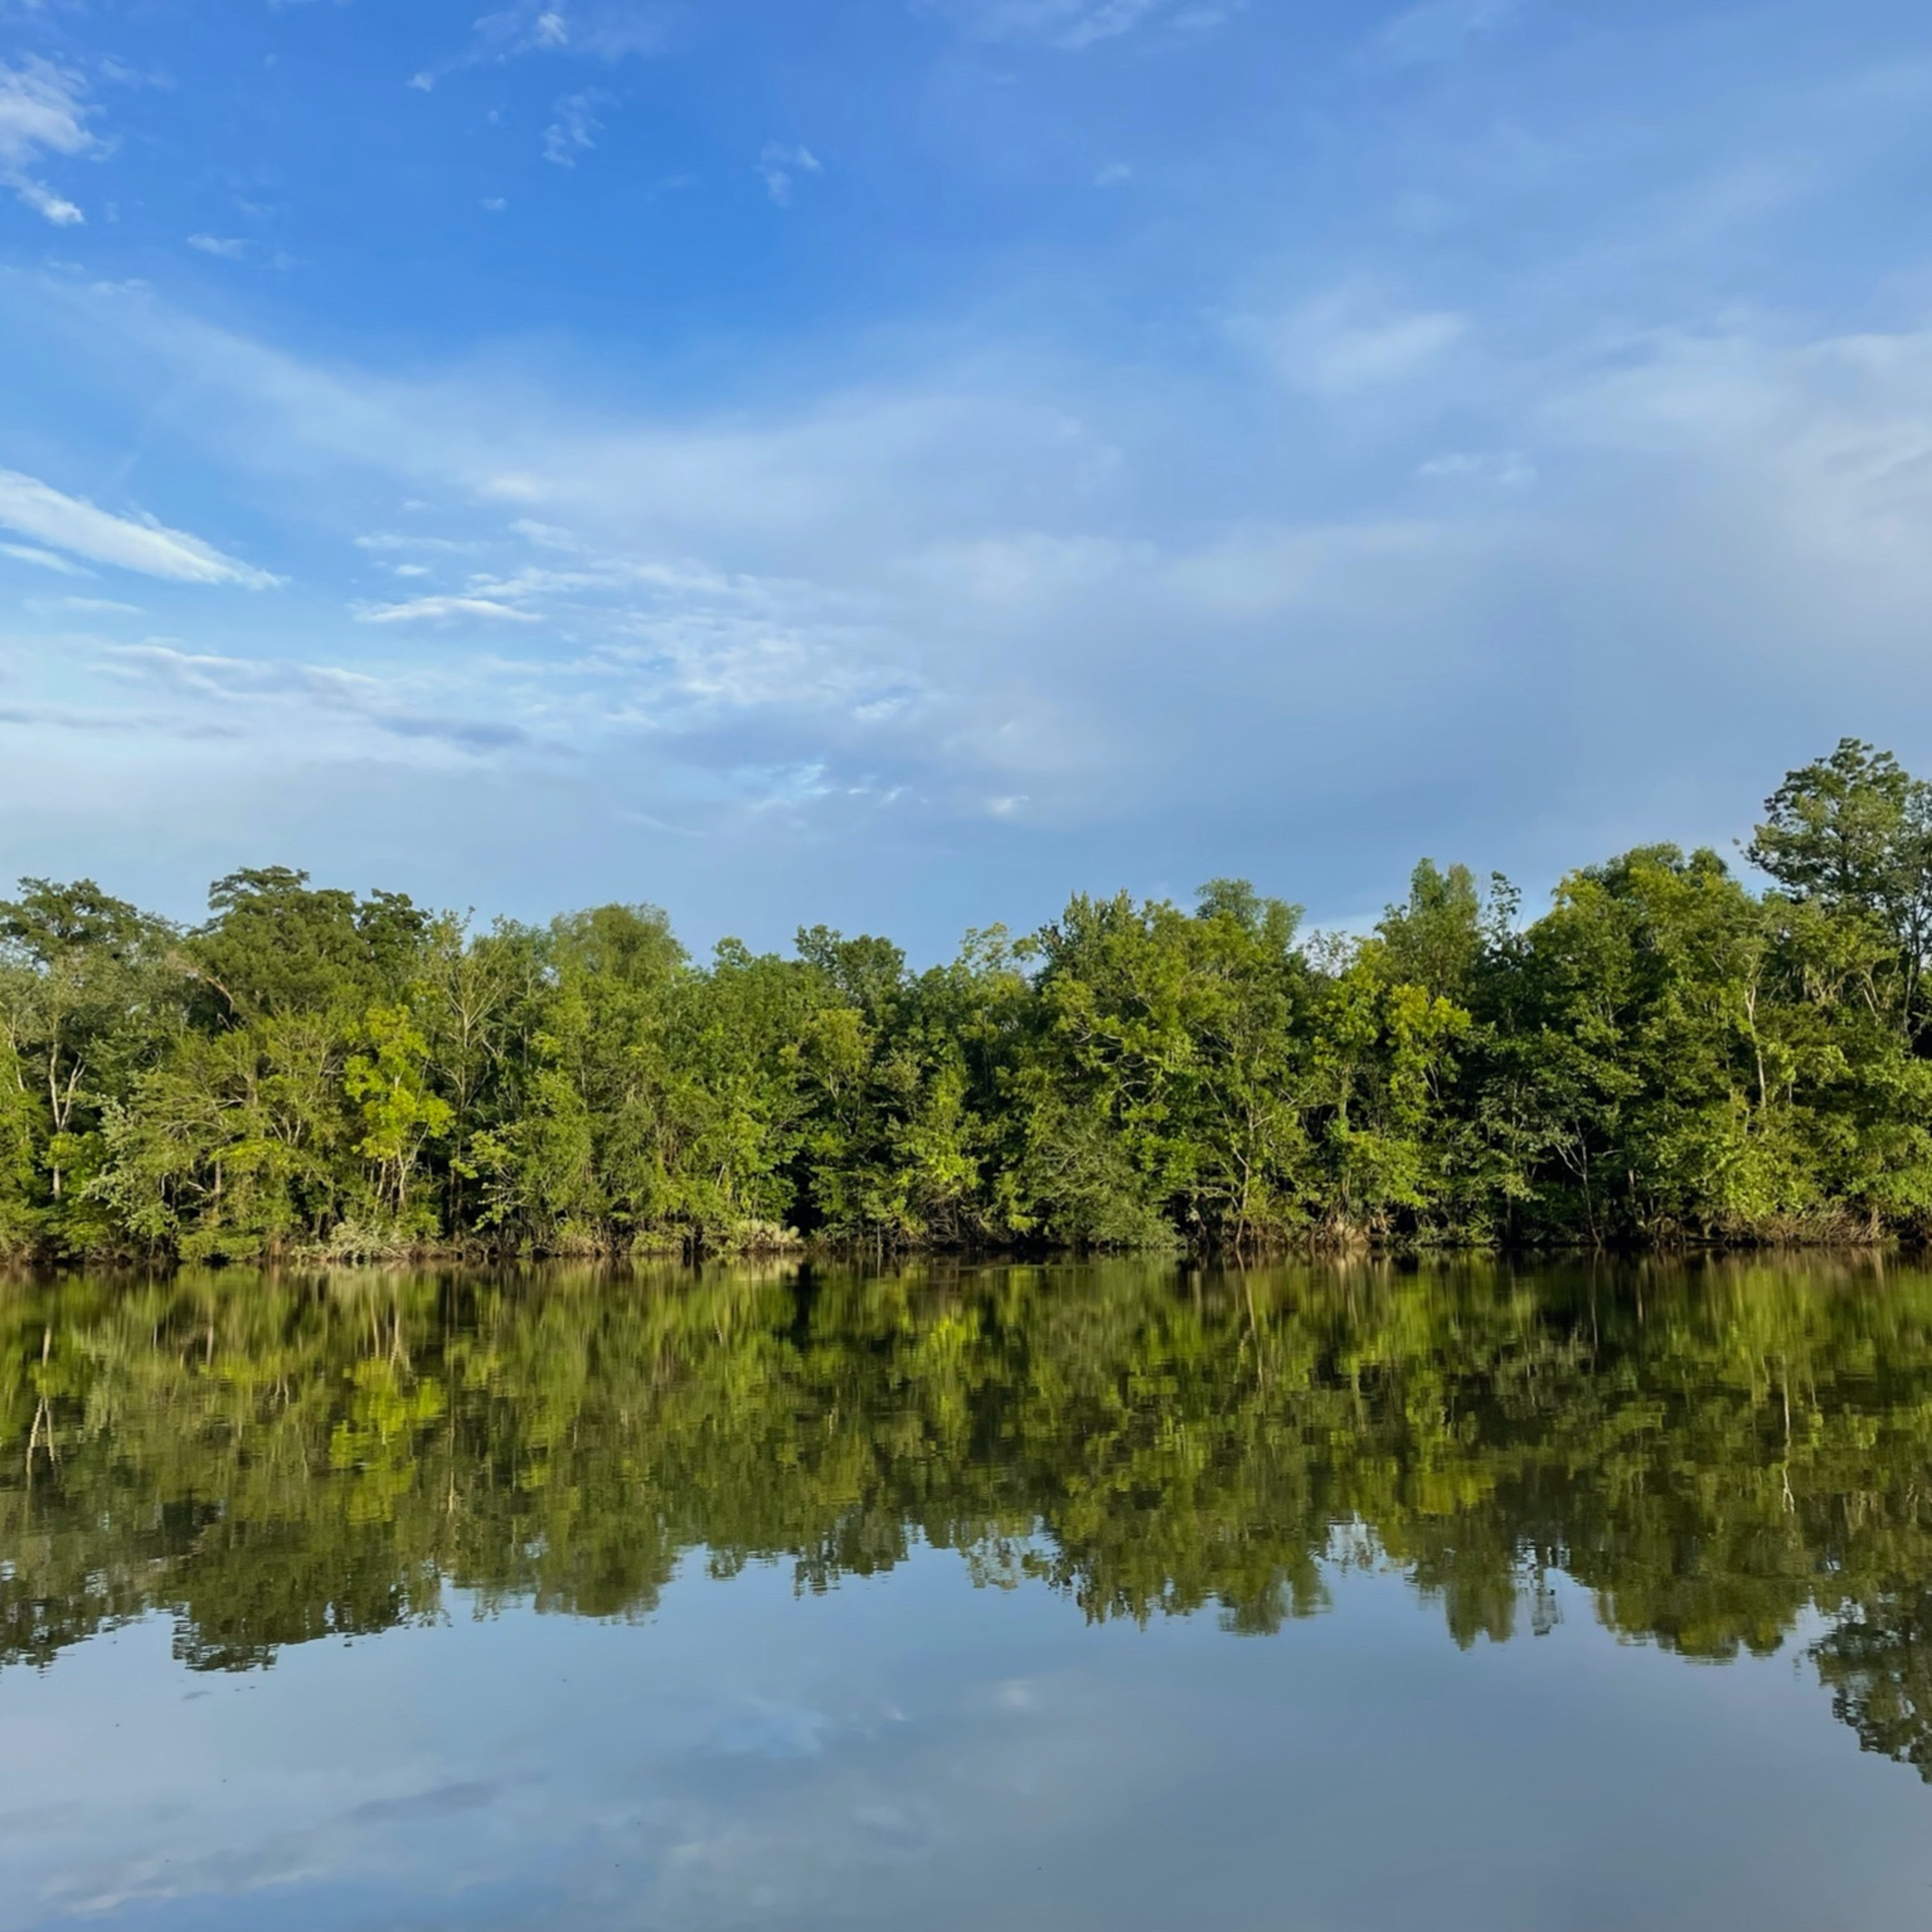 115. Live from the Bayou! Drowning & Submersion injuries